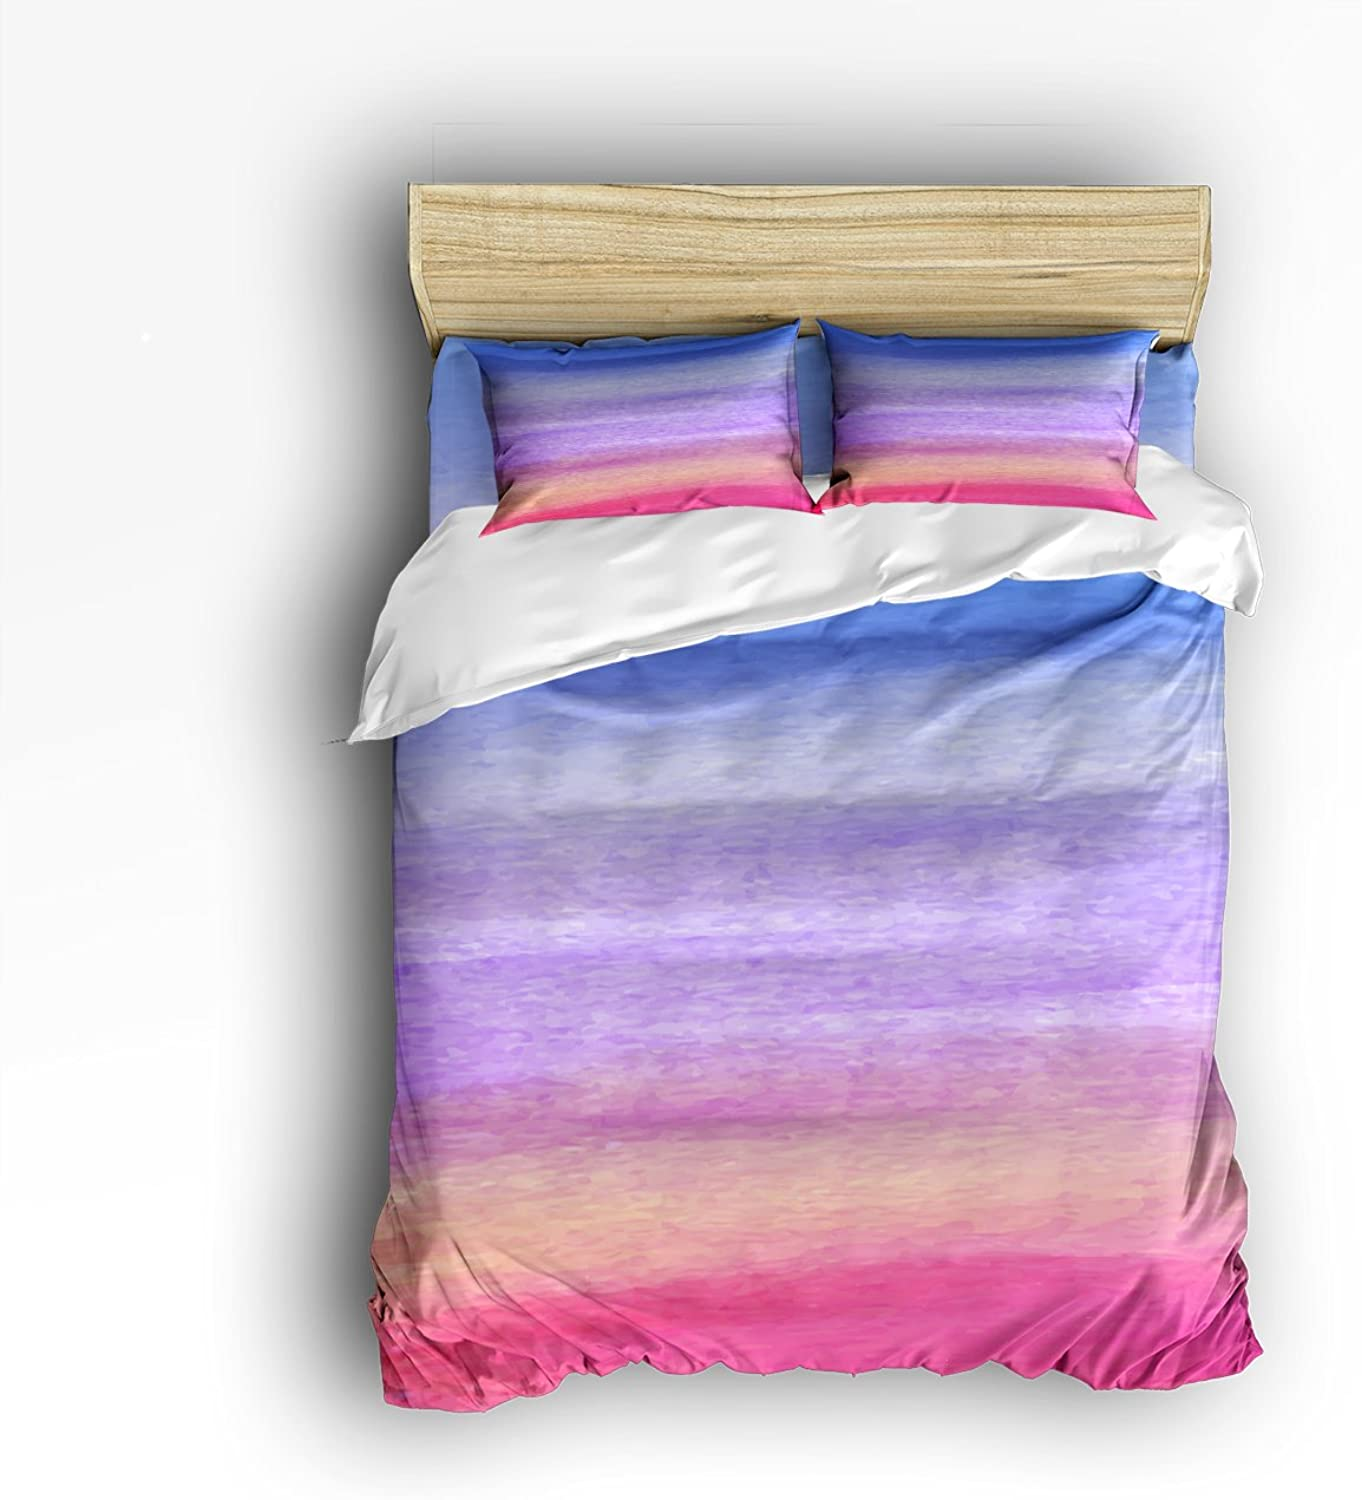 Libaoge 4 Piece Bed Sheets Set, Abstract colorful Watercolor Print, 1 Flat Sheet 1 Duvet Cover and 2 Pillow Cases